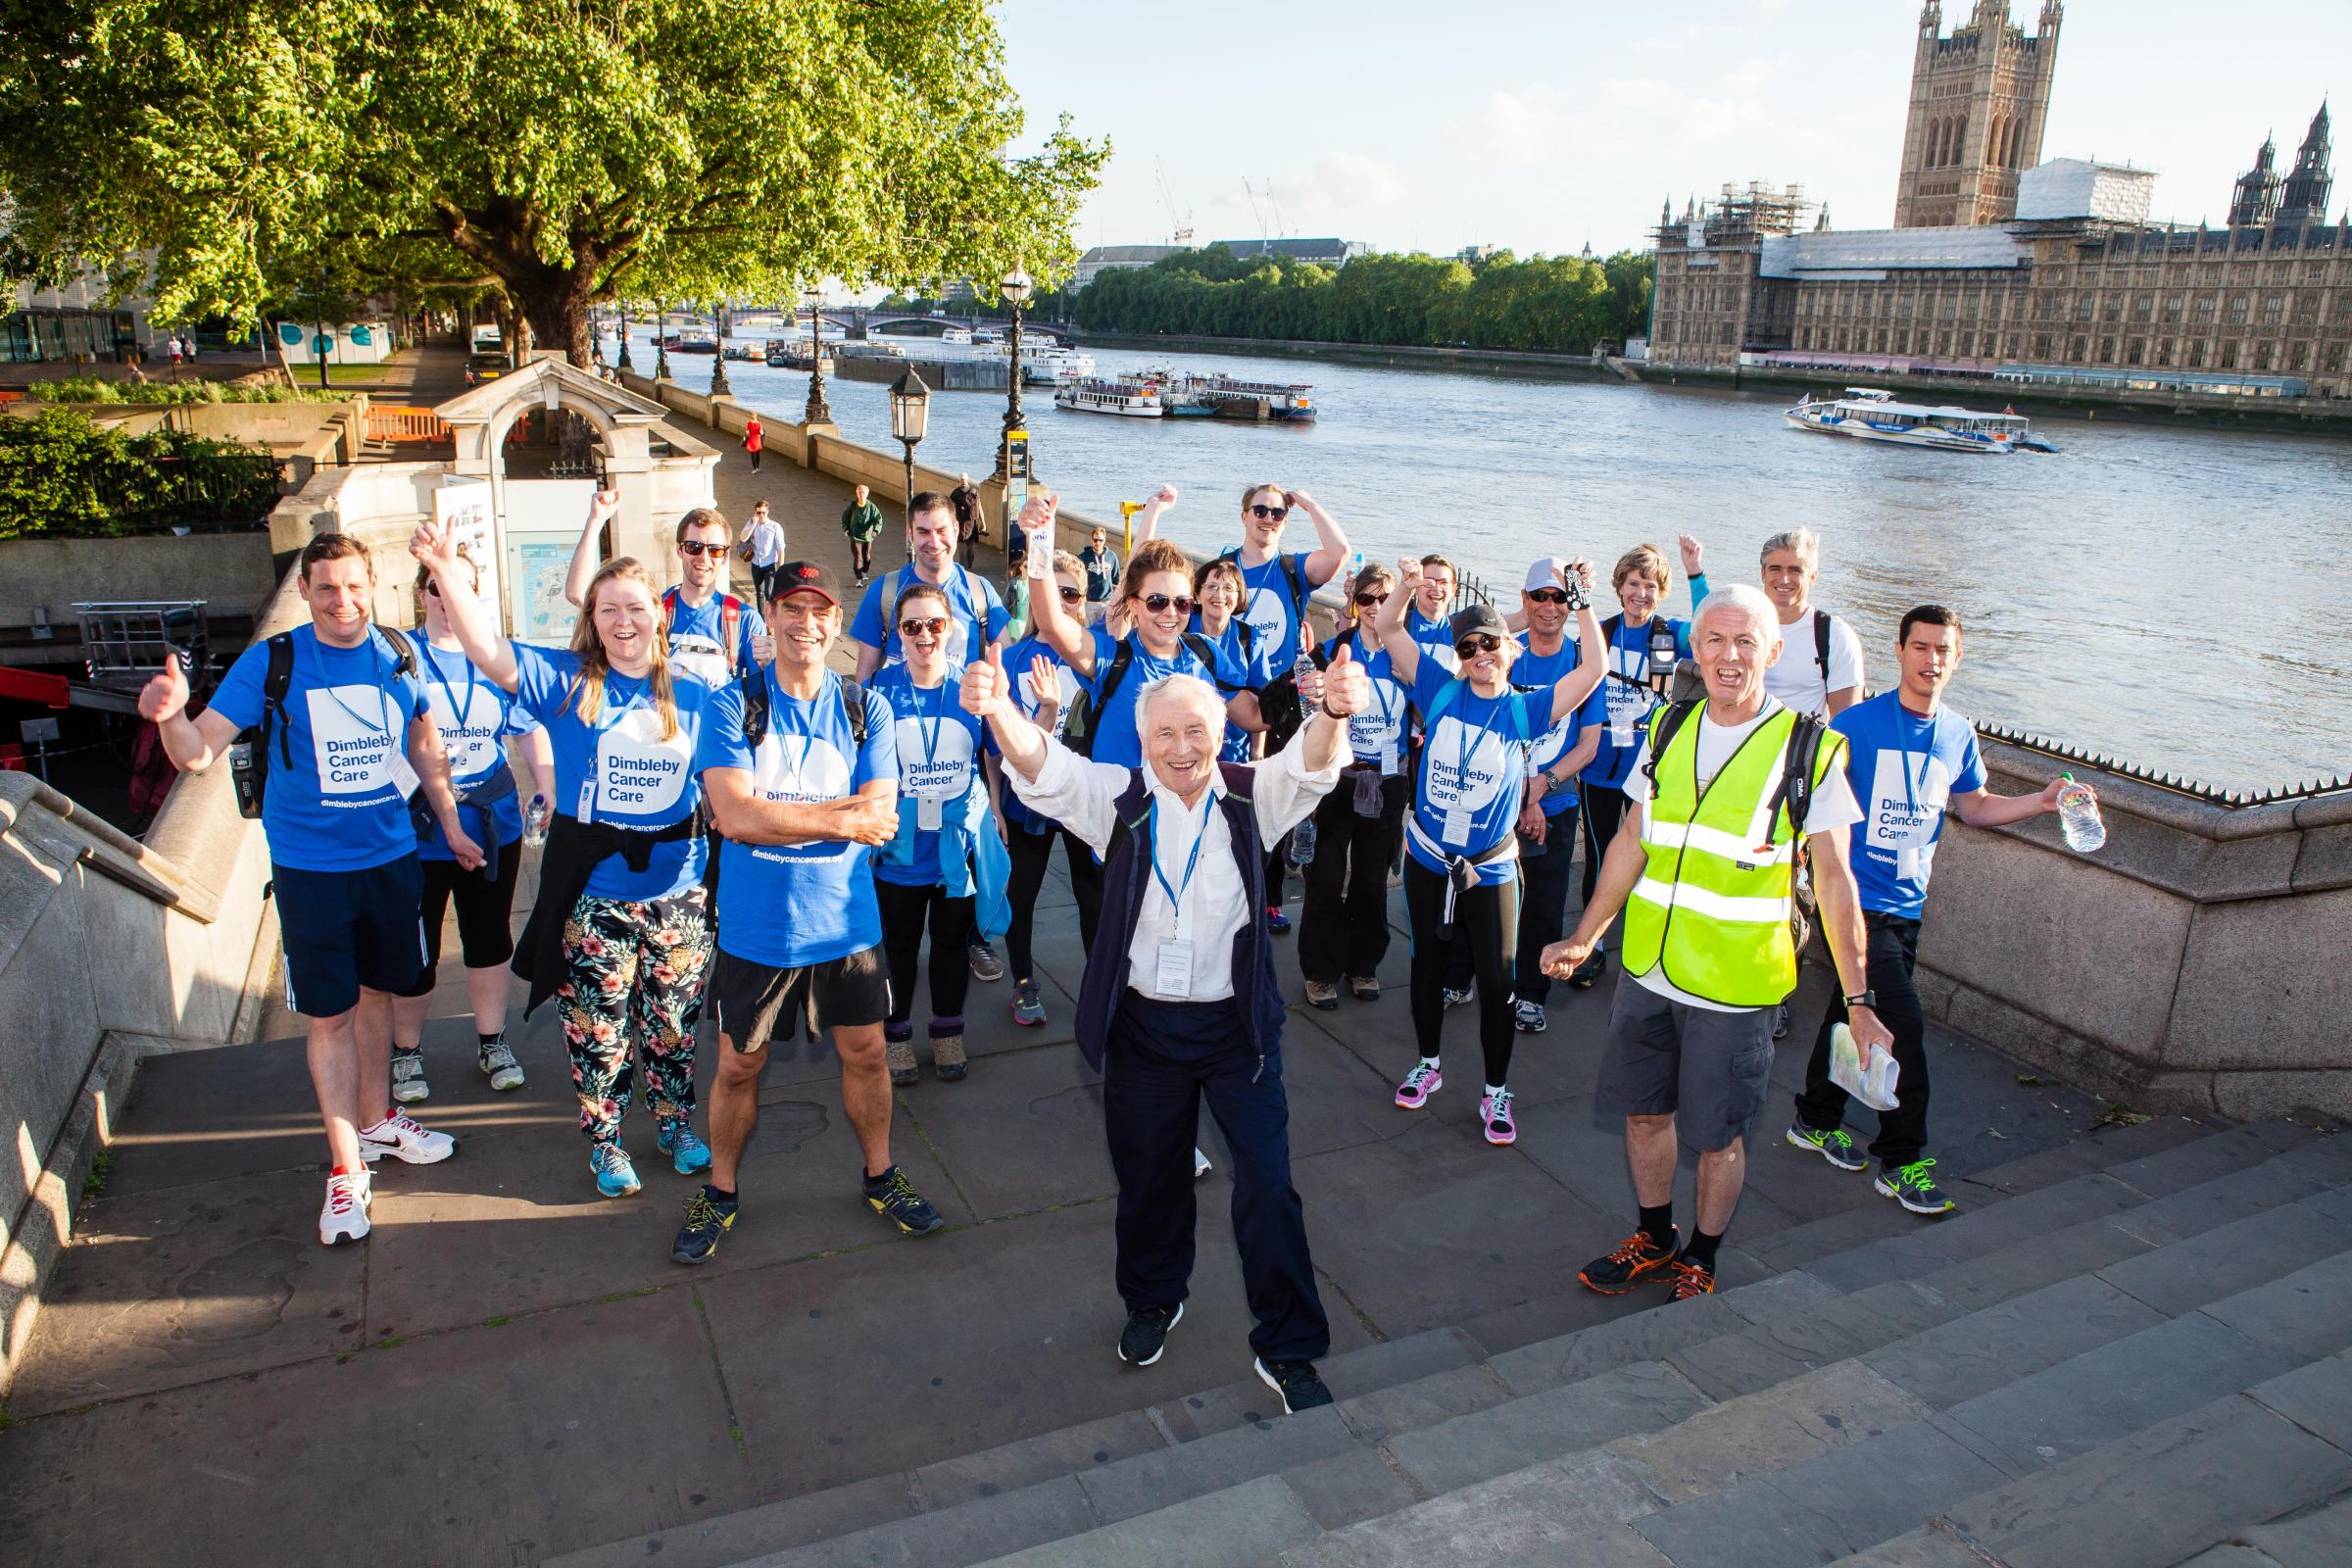 The 71-year-old is organising the night walk on June 10 for the Dimbleby Cancer Care charity after the success of last year's event, which raised £97,000